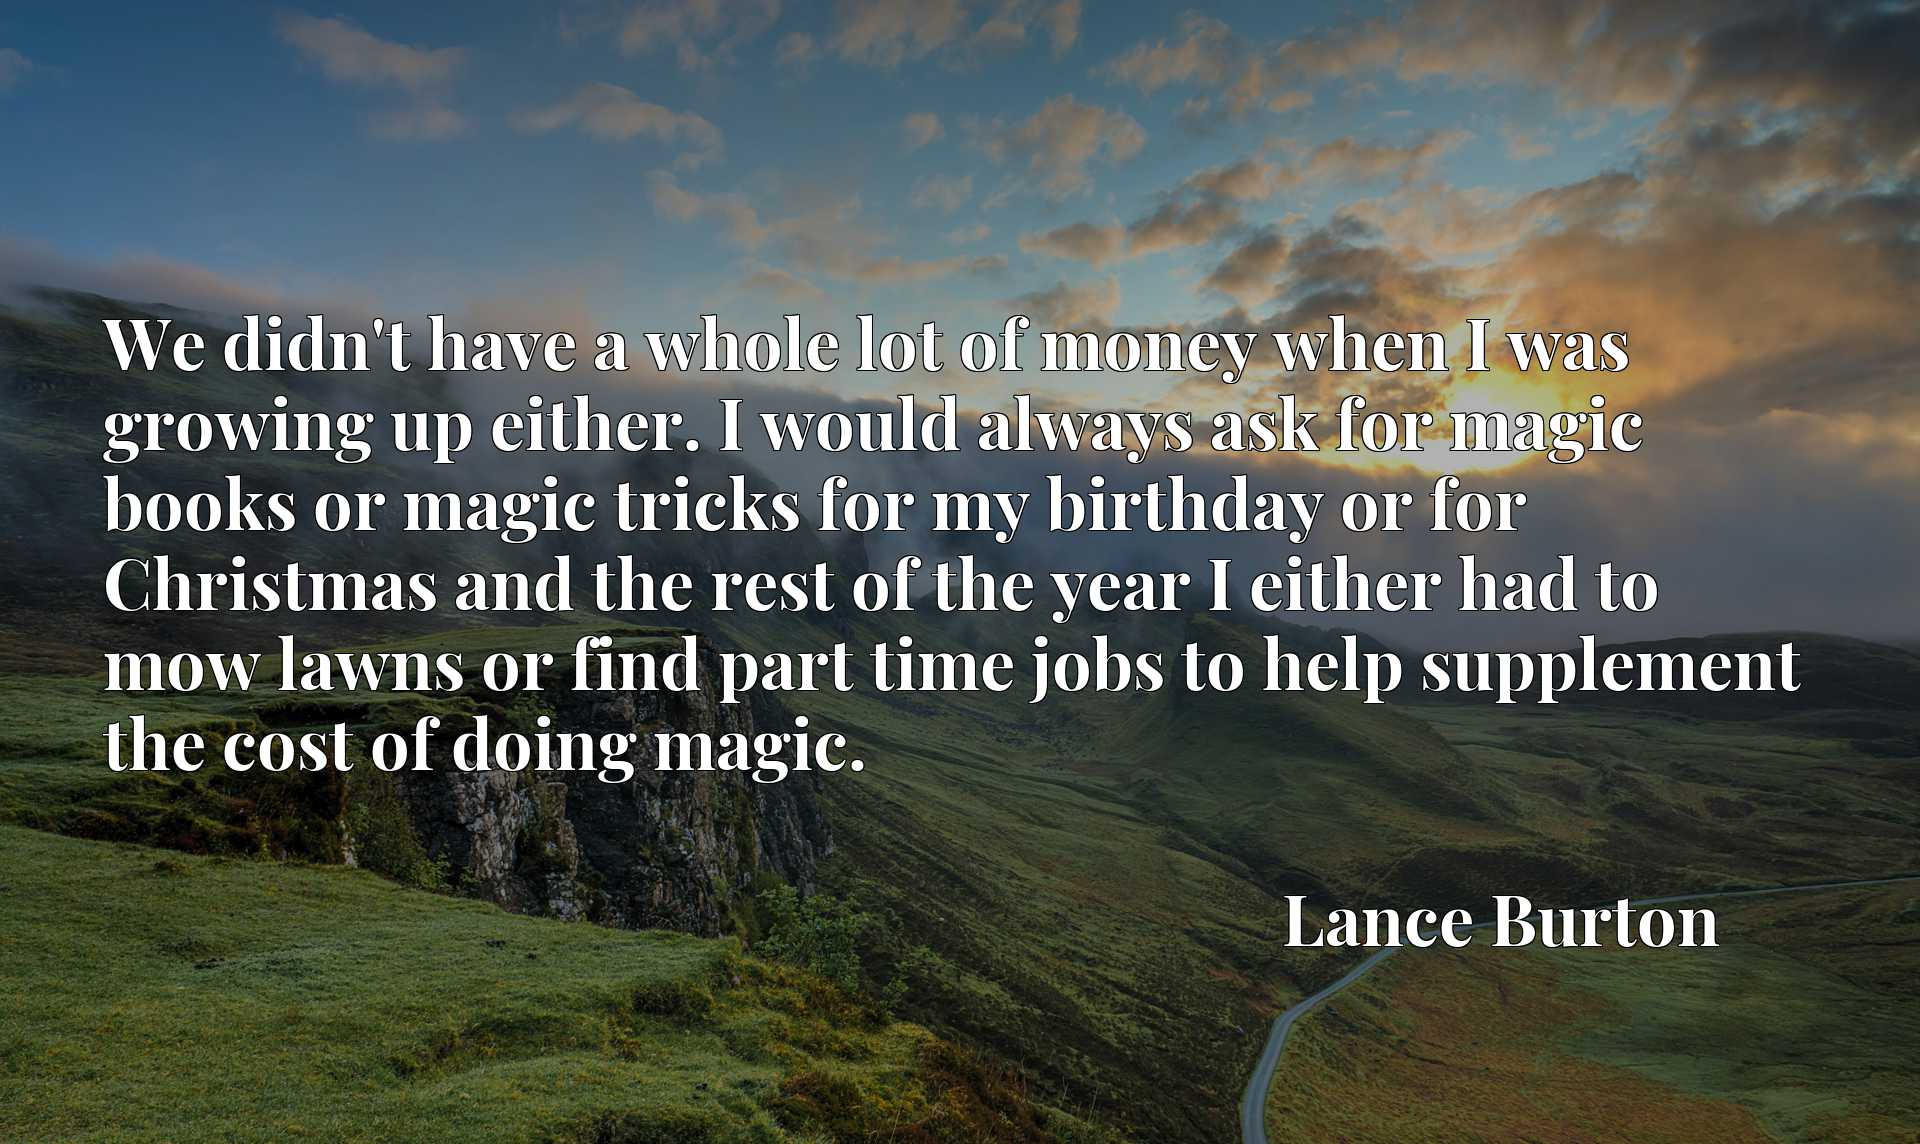 We didn't have a whole lot of money when I was growing up either. I would always ask for magic books or magic tricks for my birthday or for Christmas and the rest of the year I either had to mow lawns or find part time jobs to help supplement the cost of doing magic.